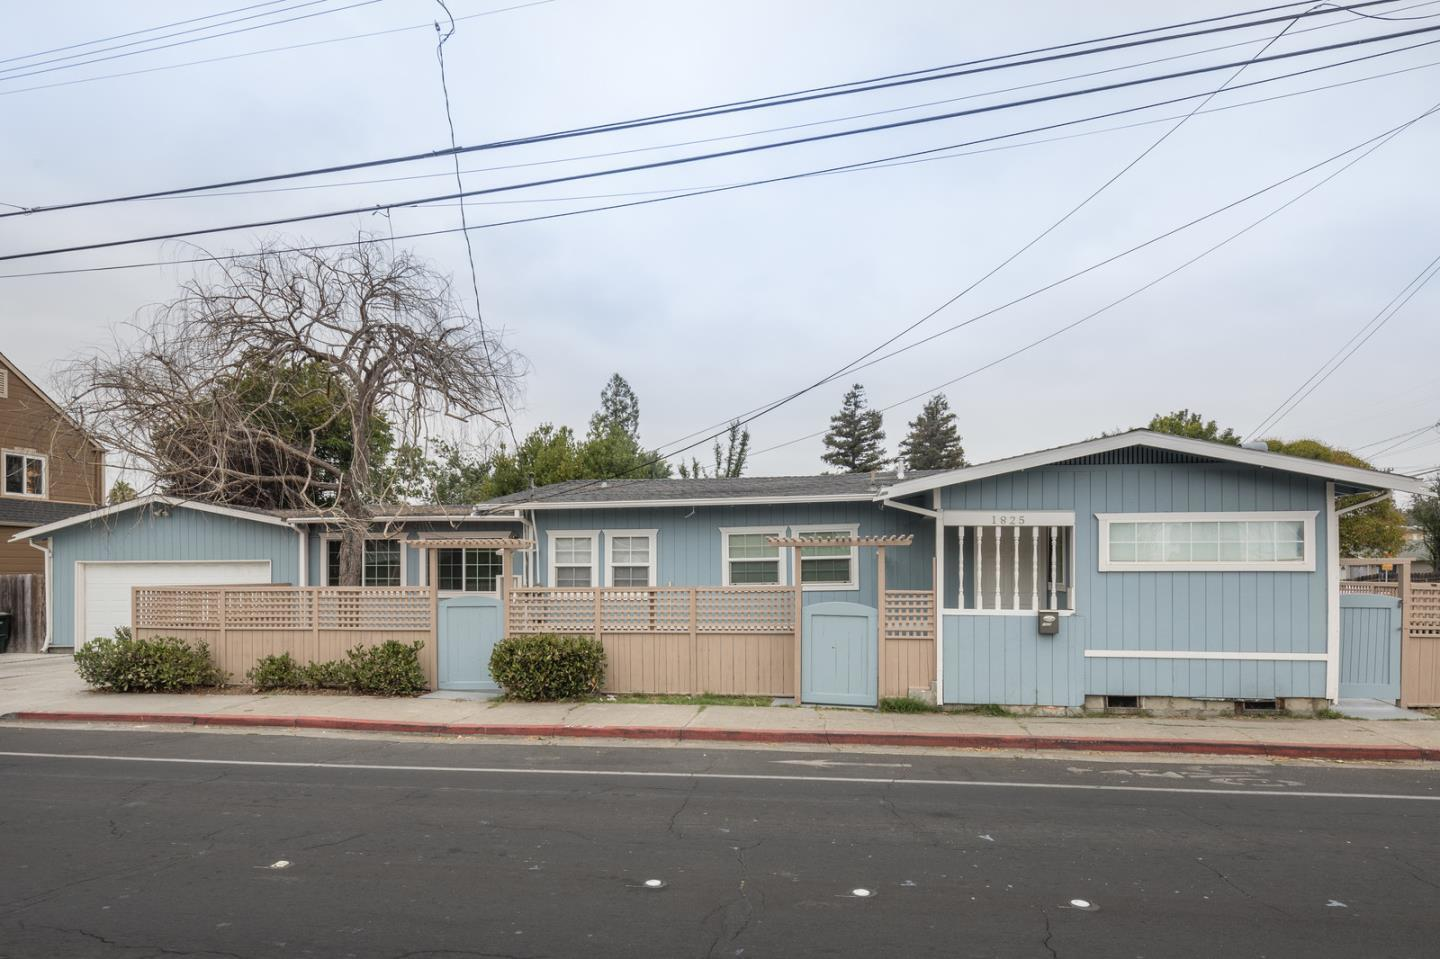 3 bed / 2 baths Home in REDWOOD CITY for $998,000